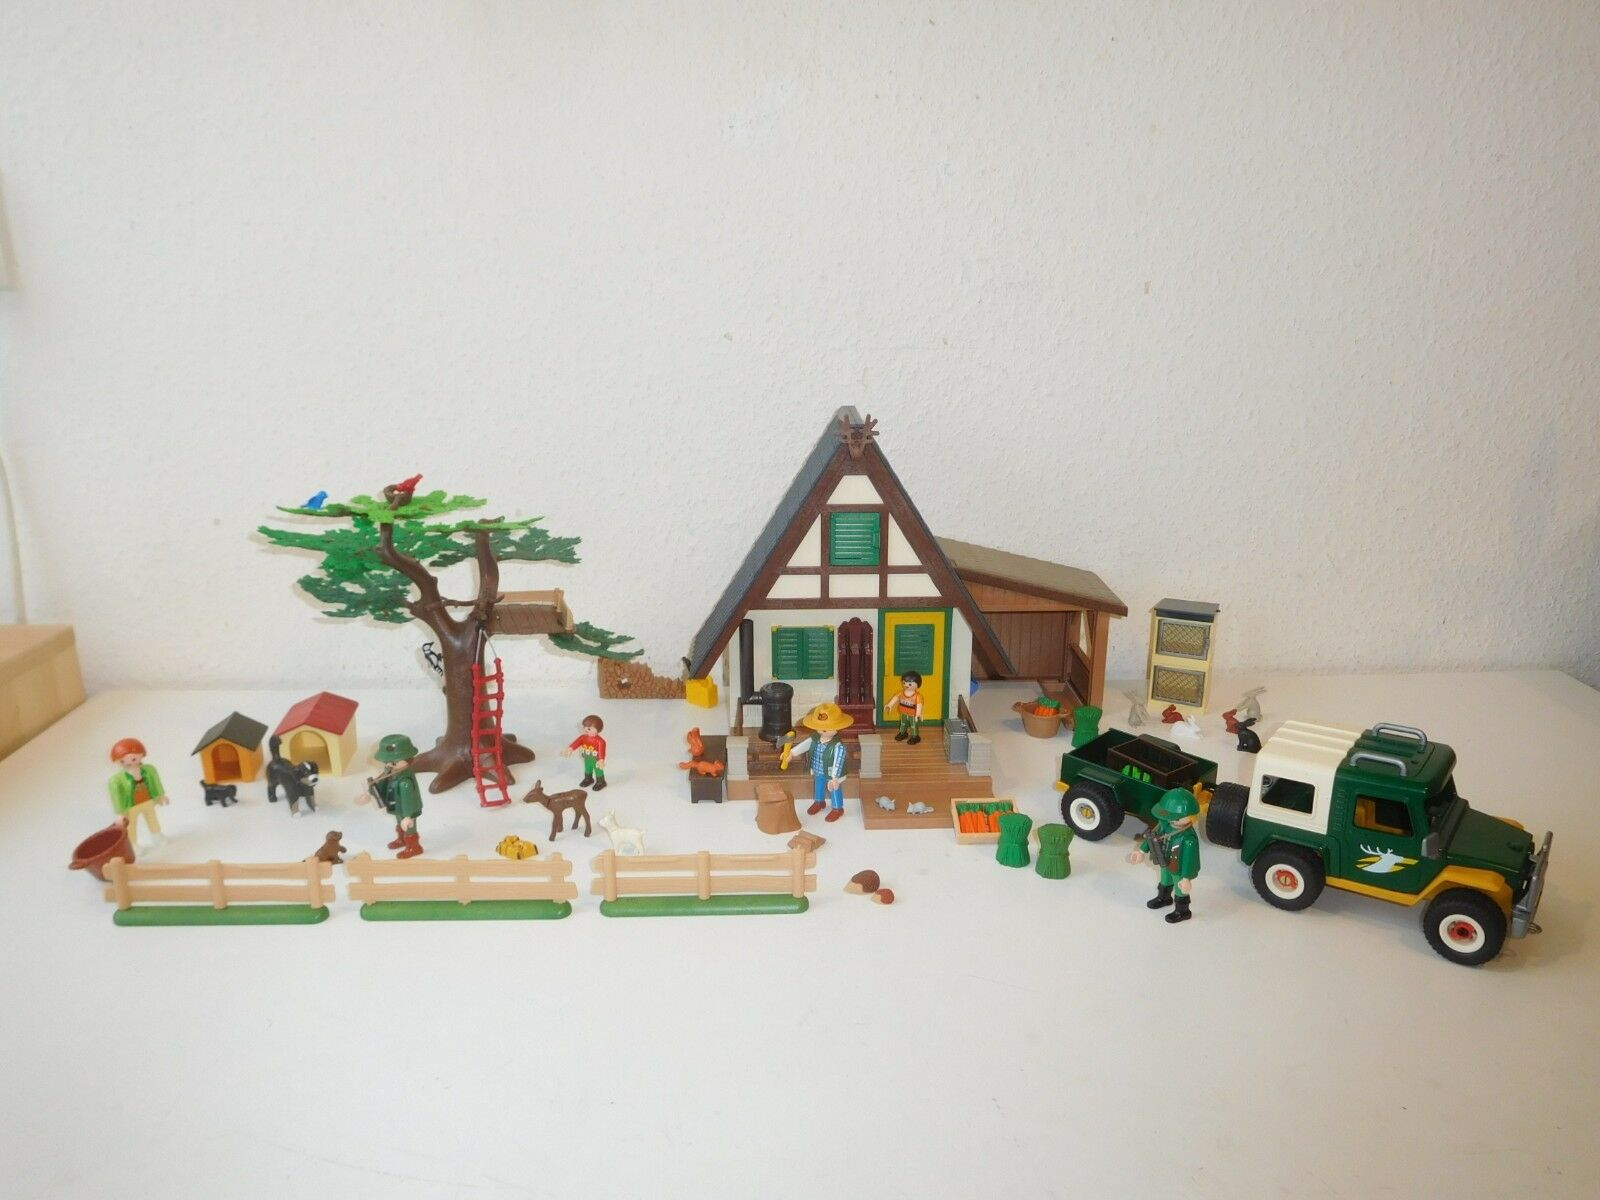 Playmobil forestry set with car